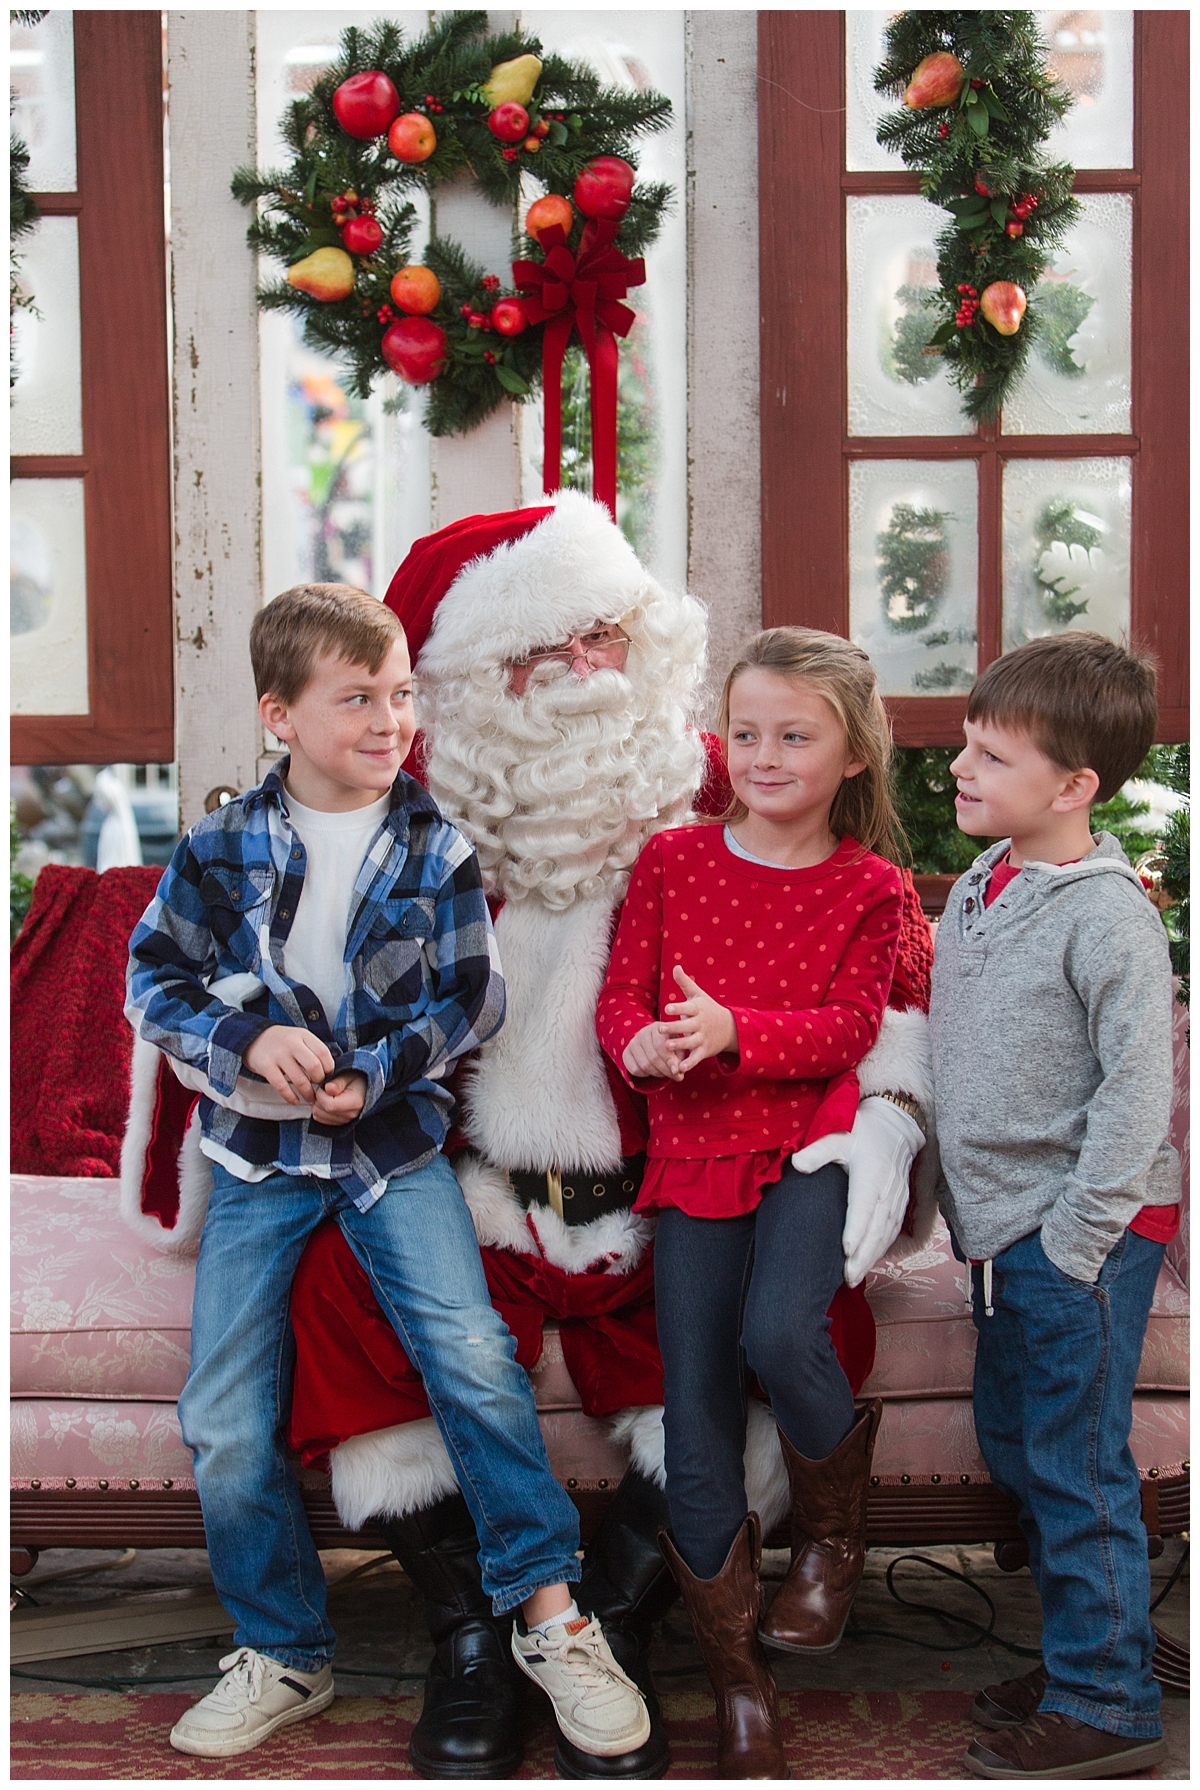 This was right after Macy let Santa know she would really like a horse for Christmas!